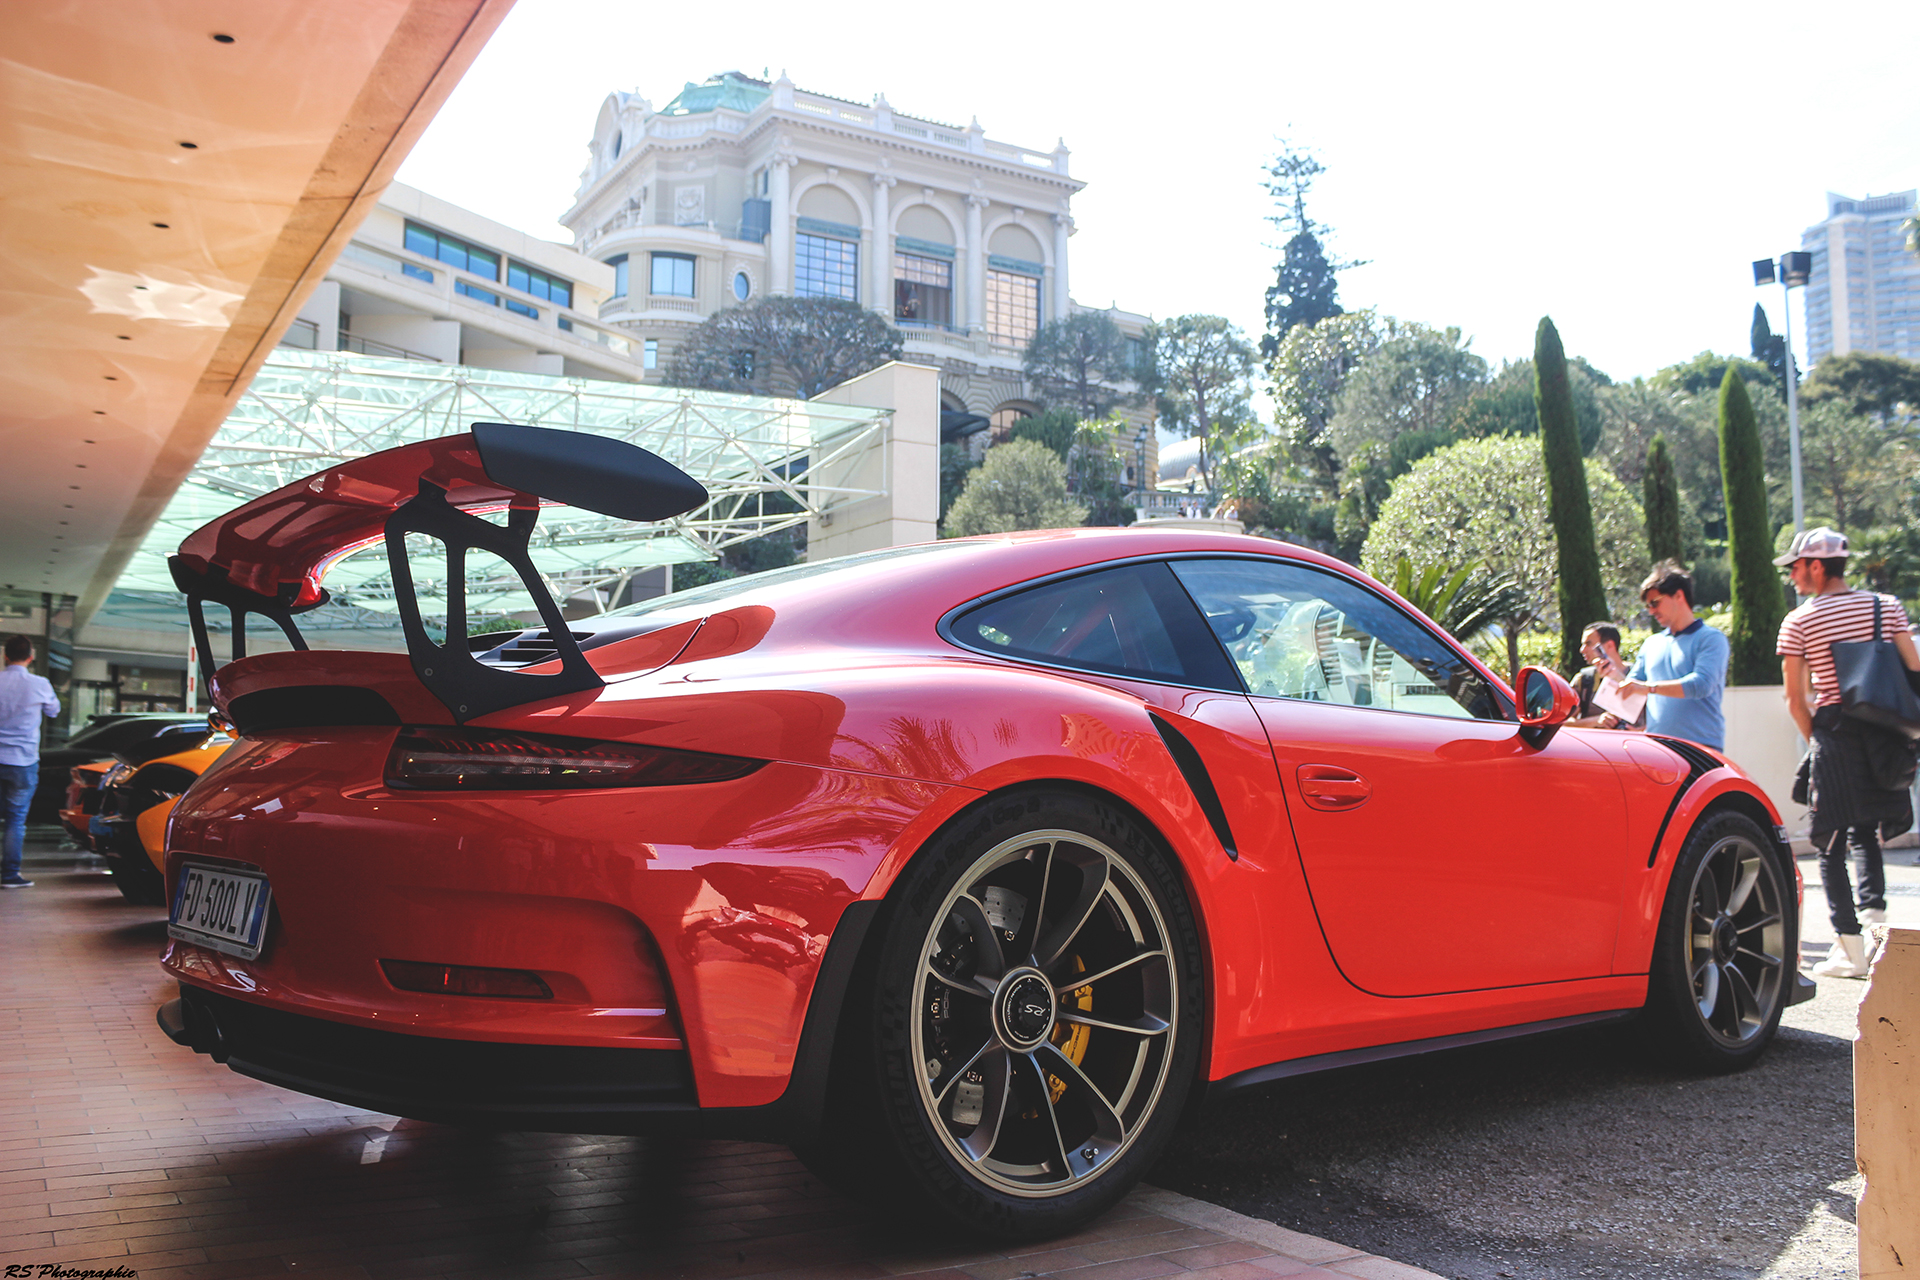 Porsche GT3 RS rear - Top Marques Monaco 2016 - Arnaud Demasier RS Photographie